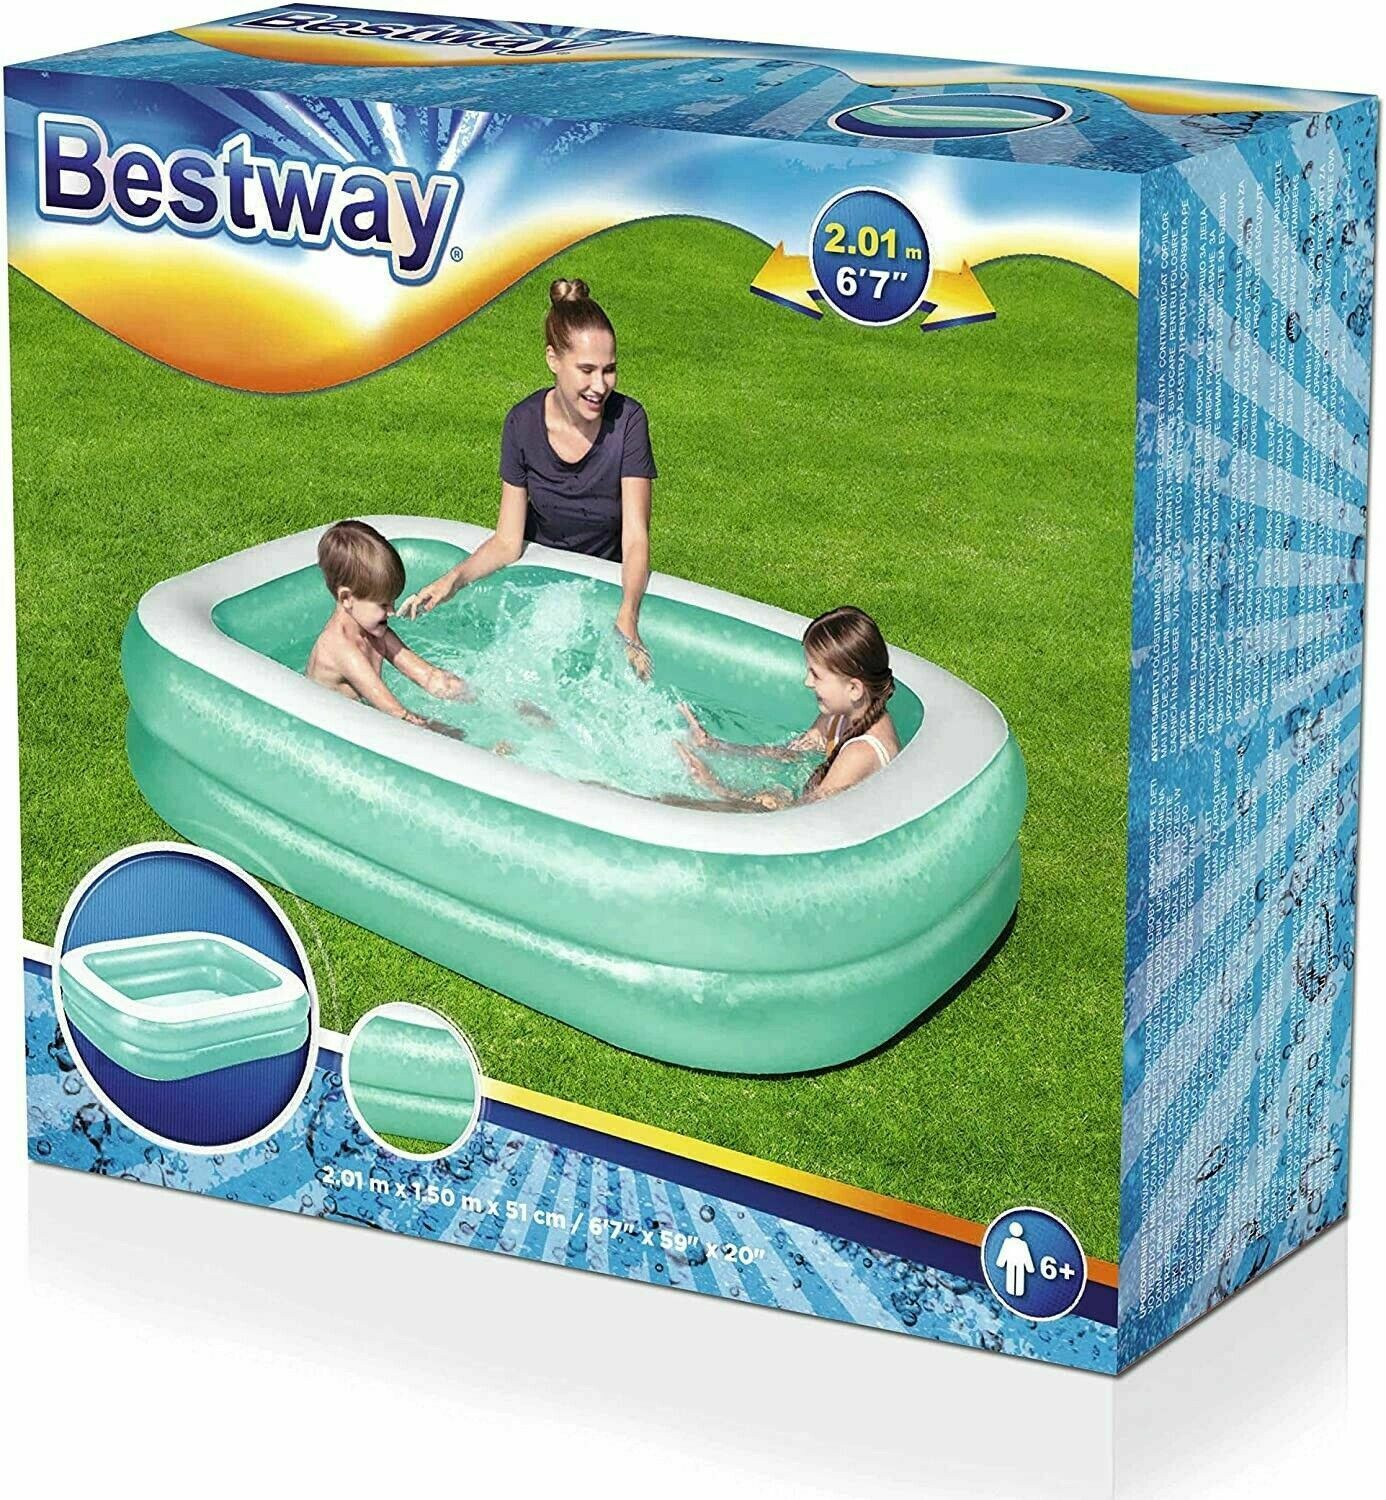 BESTWAY Paddling Pool Ground Blue Rectangular Family Inflatable - 201 x 150cm